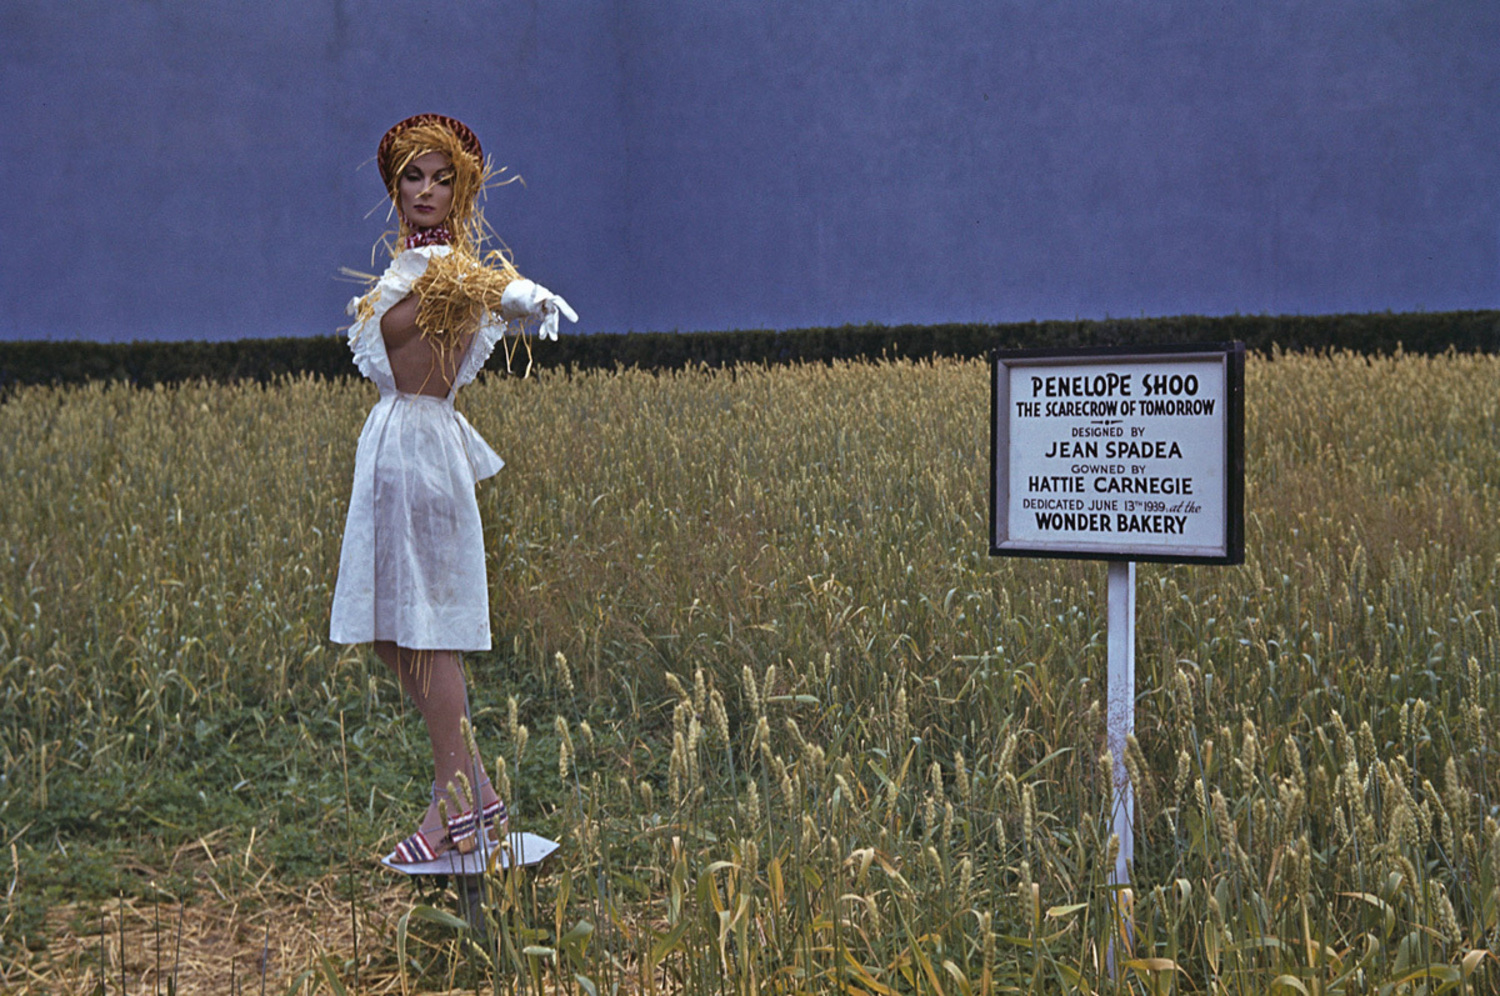 """Wonder Bread Bakery displays a wheat field exhibit at the 1939 New York World's Fair. The """"scarecrow of tomorrow,"""" Penelope Shoo, is wearing an outfit designed by Hattie Carnegie. The wheat field was billed as """"the first planted in New York City since 1875."""""""